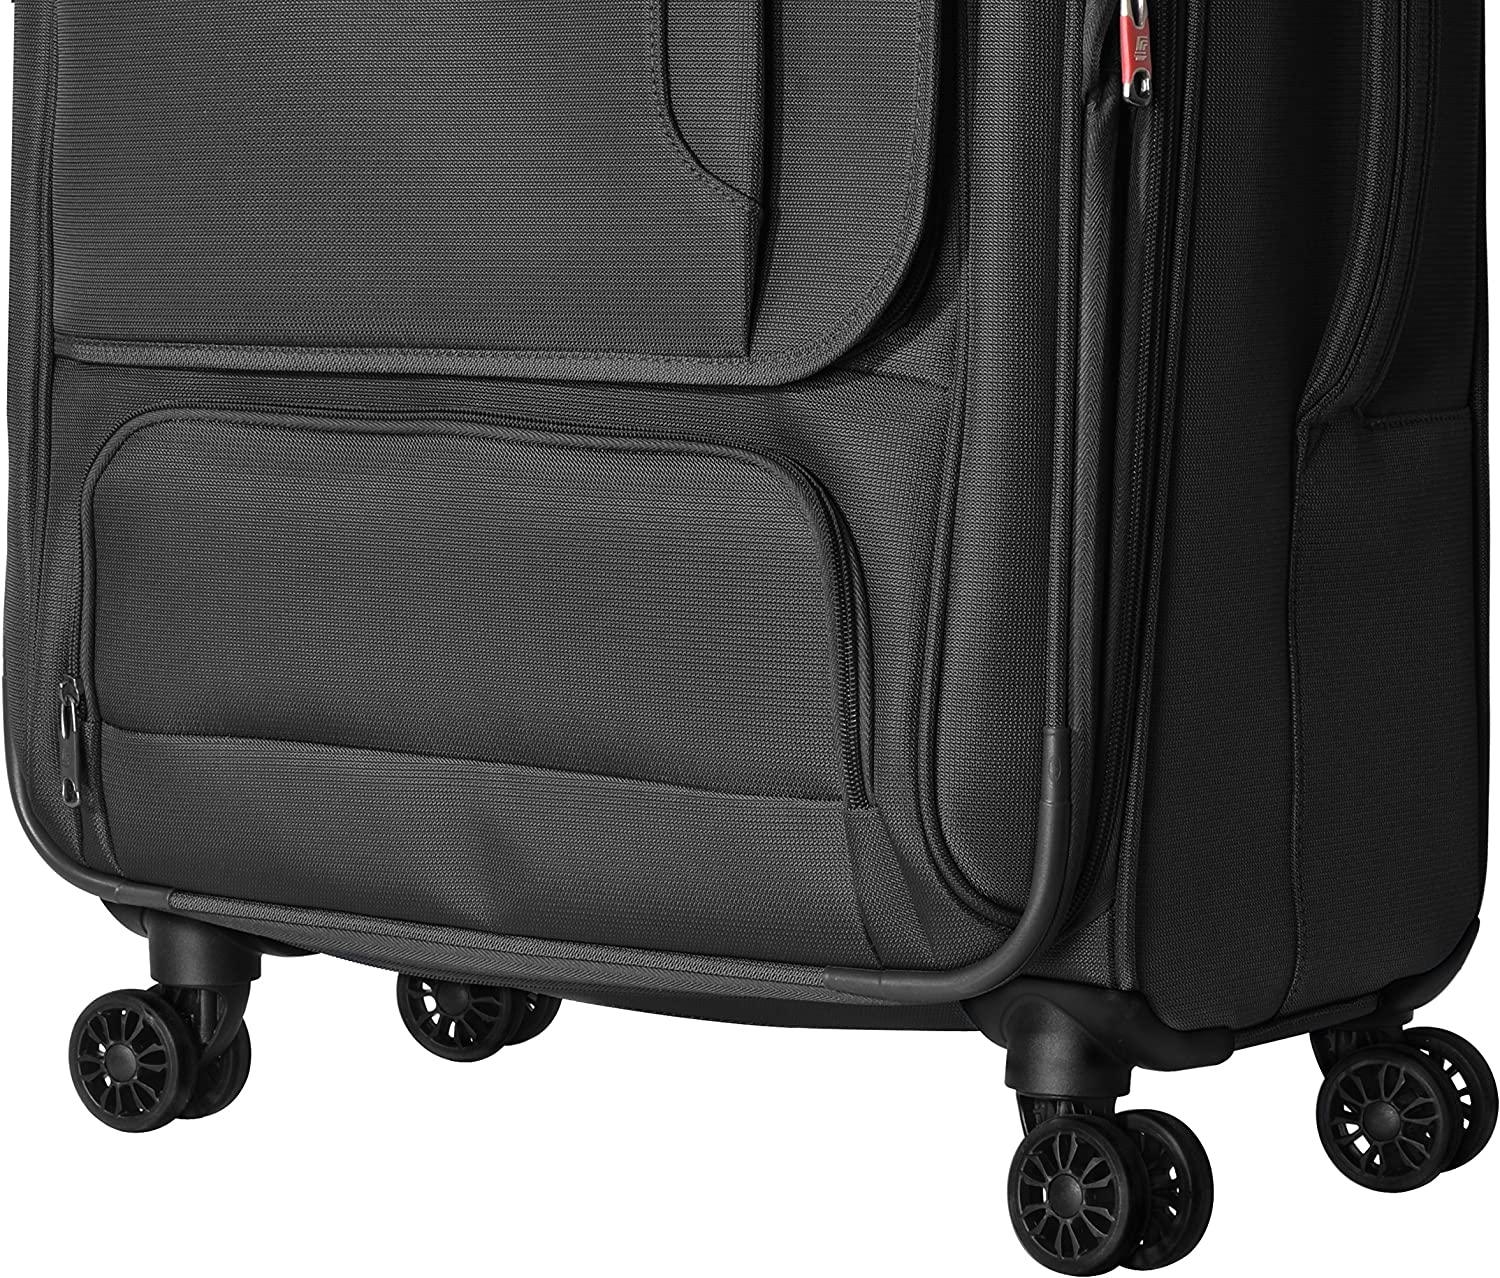 Black Olympia Petra 21 Carry-on Spinner